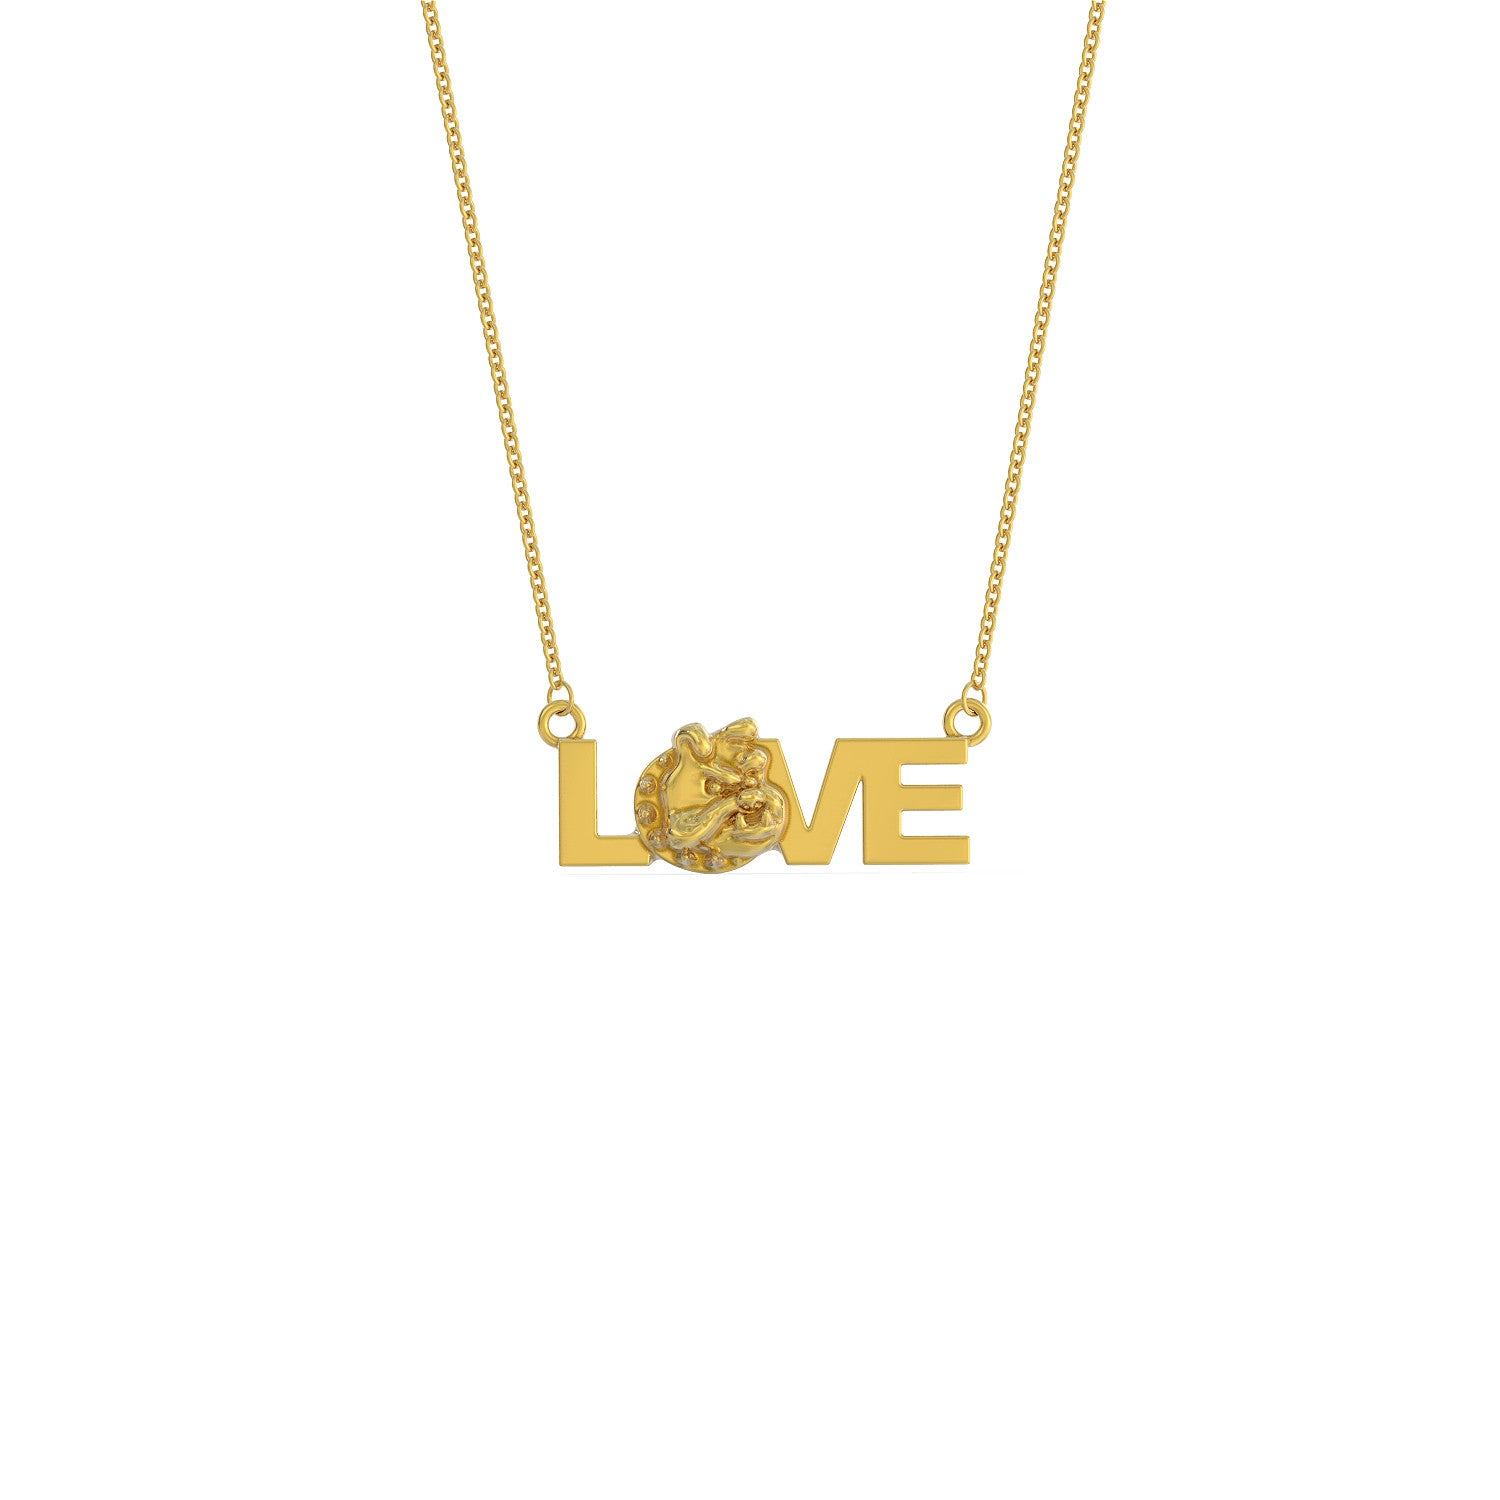 Love Bulldog Necklace